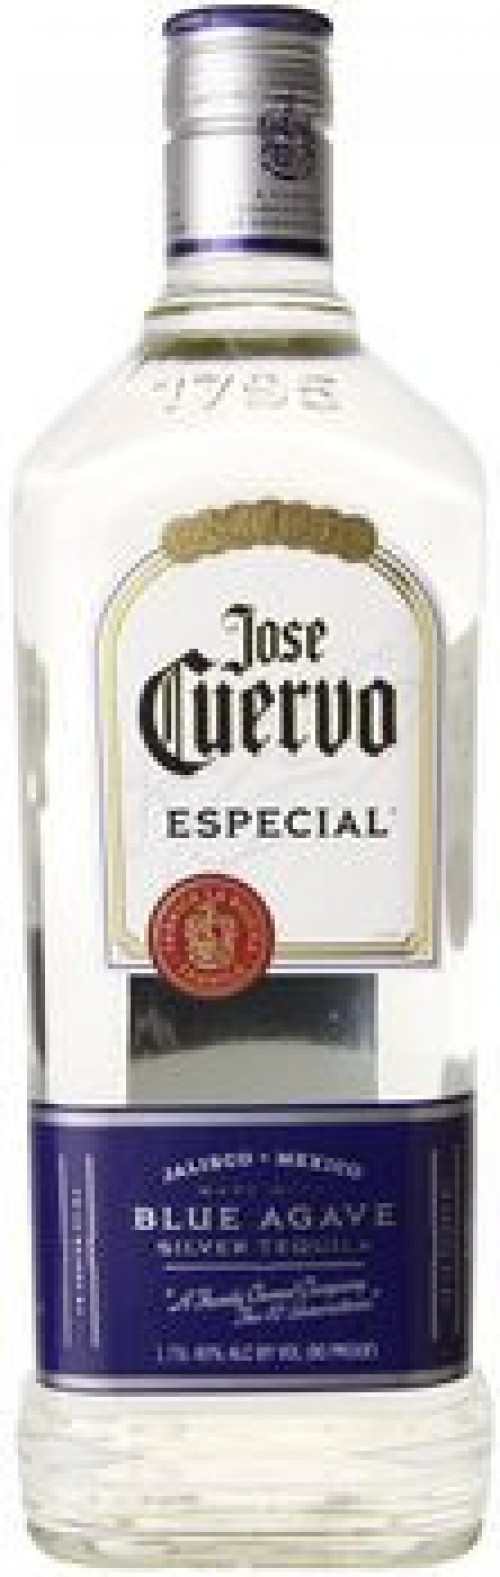 Jose Cuervo Silver Tequila 1.75 Ltr